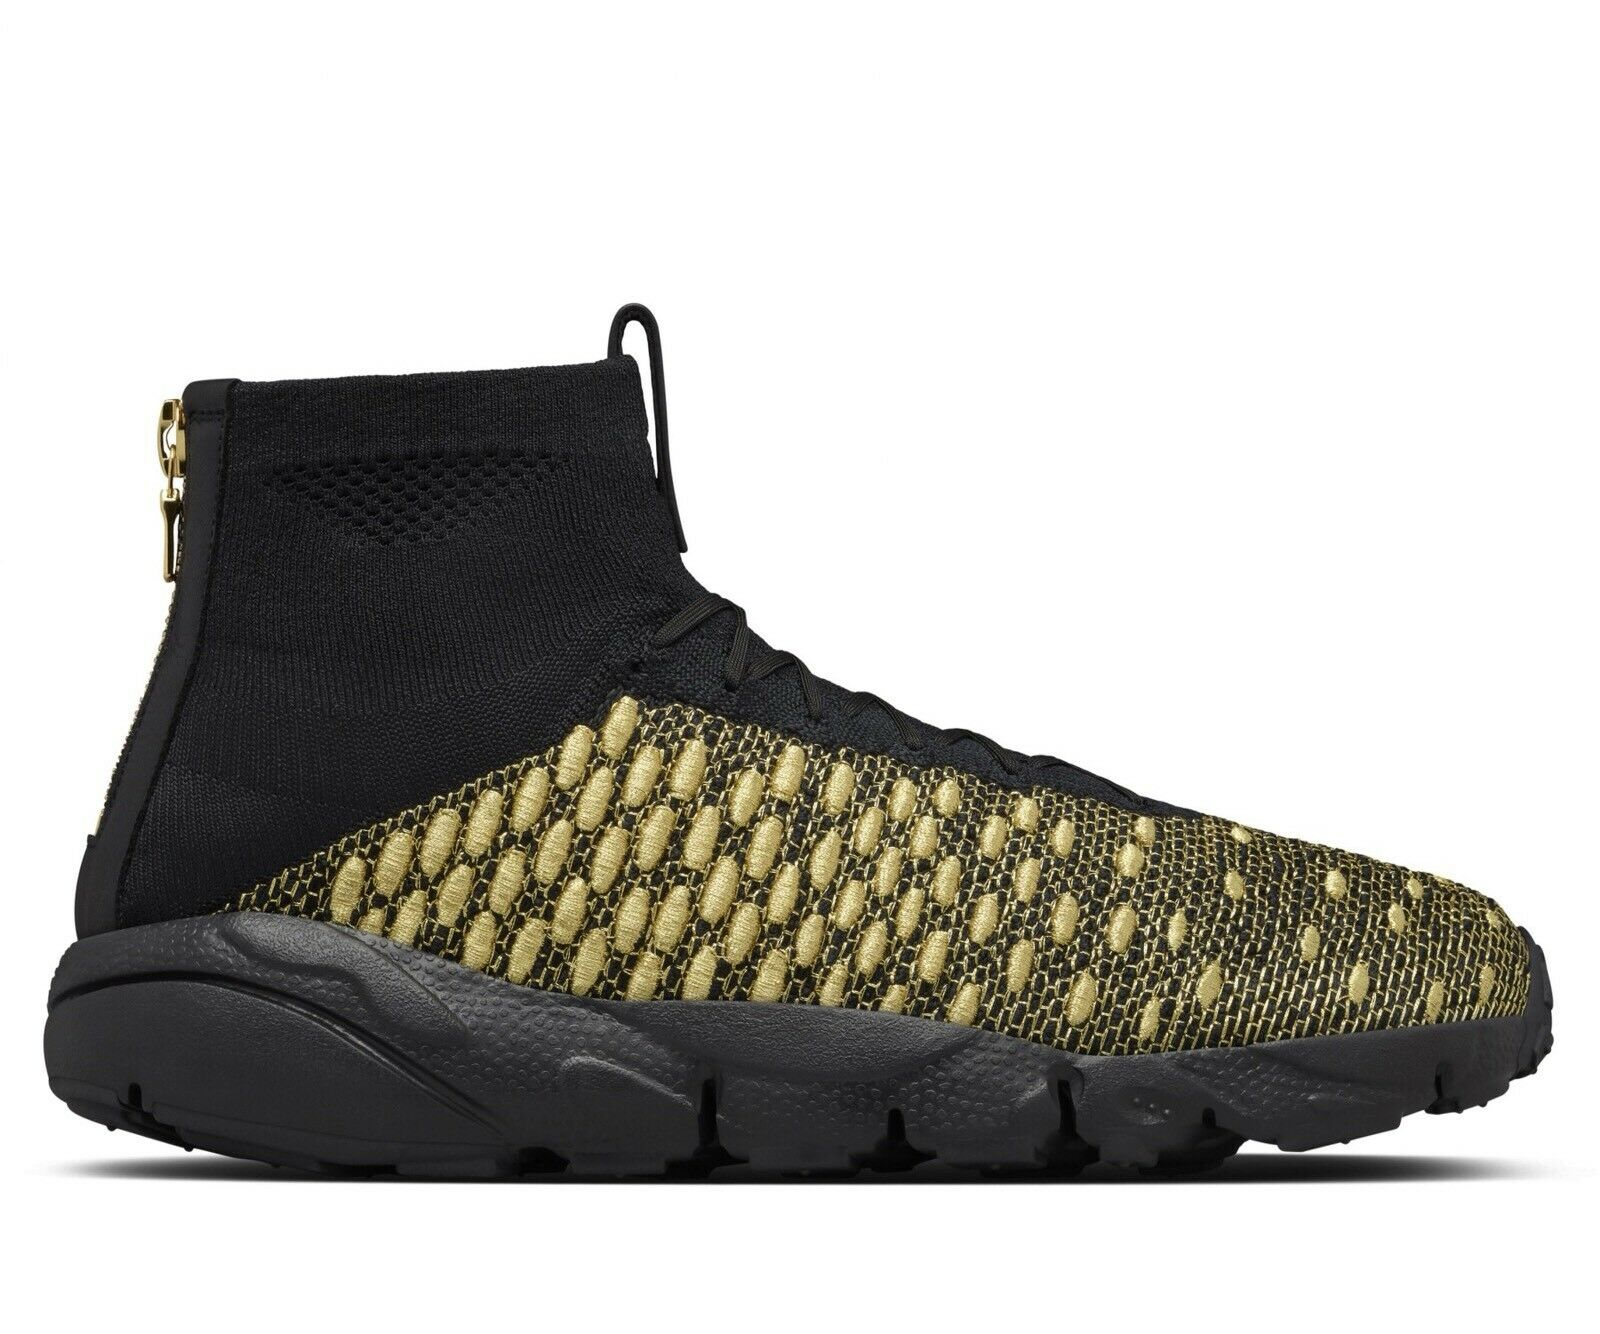 Nike x Olivier Rousteing Air Footscape Magista UK QS Lion 834905-007 Sz UK Magista 10 EU 45 f72e50